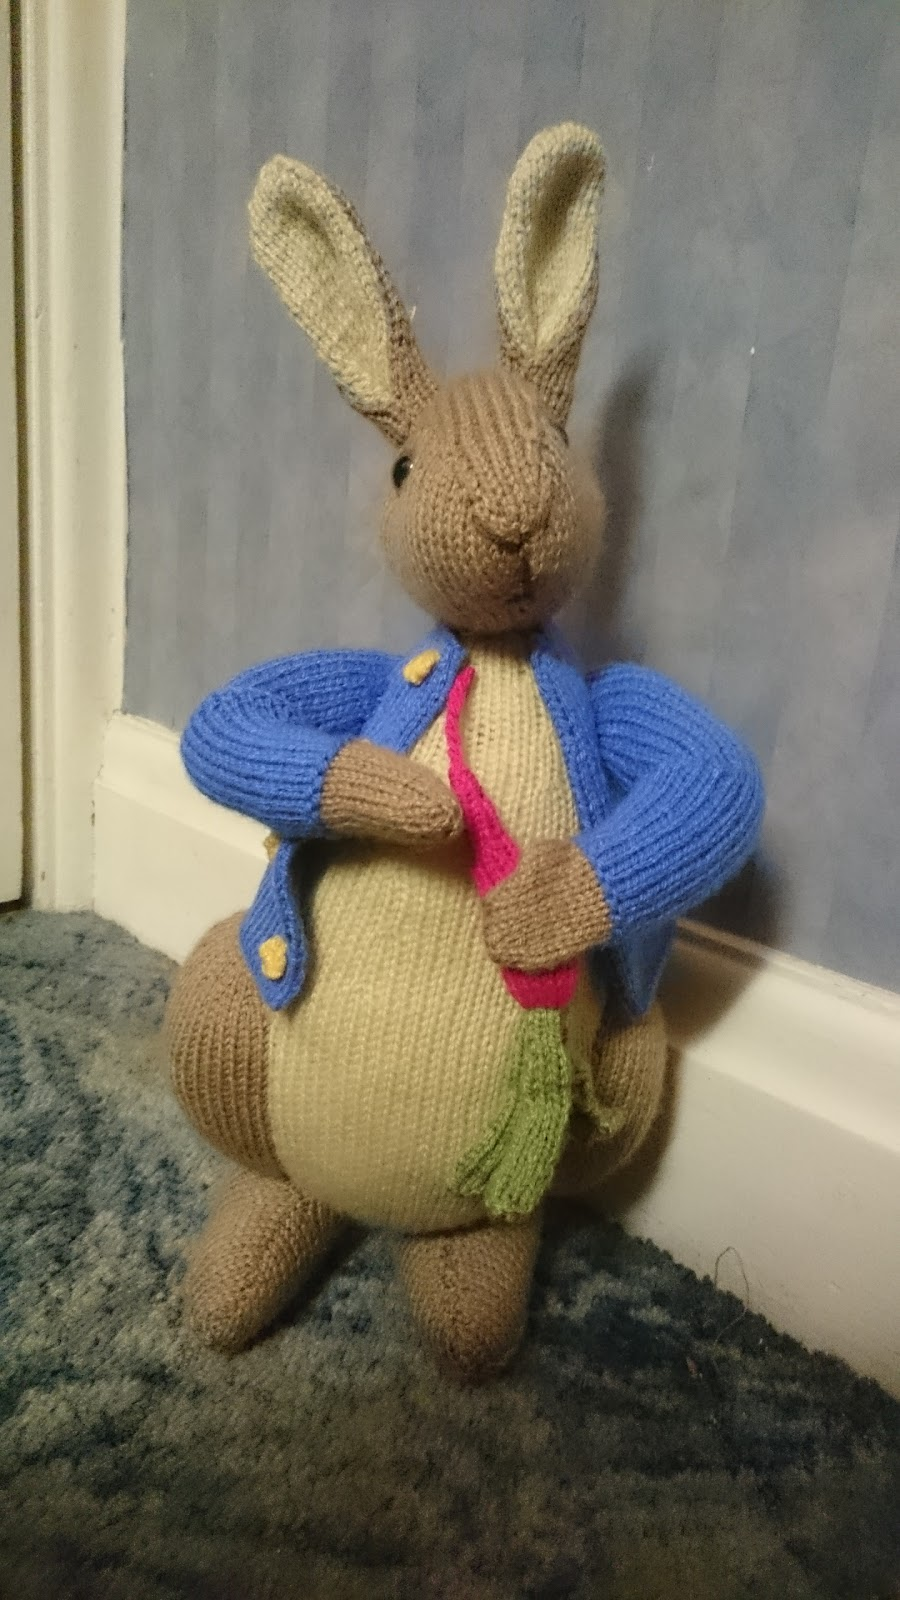 Knitting Pattern For Peter Rabbit Jumper : Freddie Patmores Knitting Frolics: Peter Rabbit Knitting Pattern - A Chr...